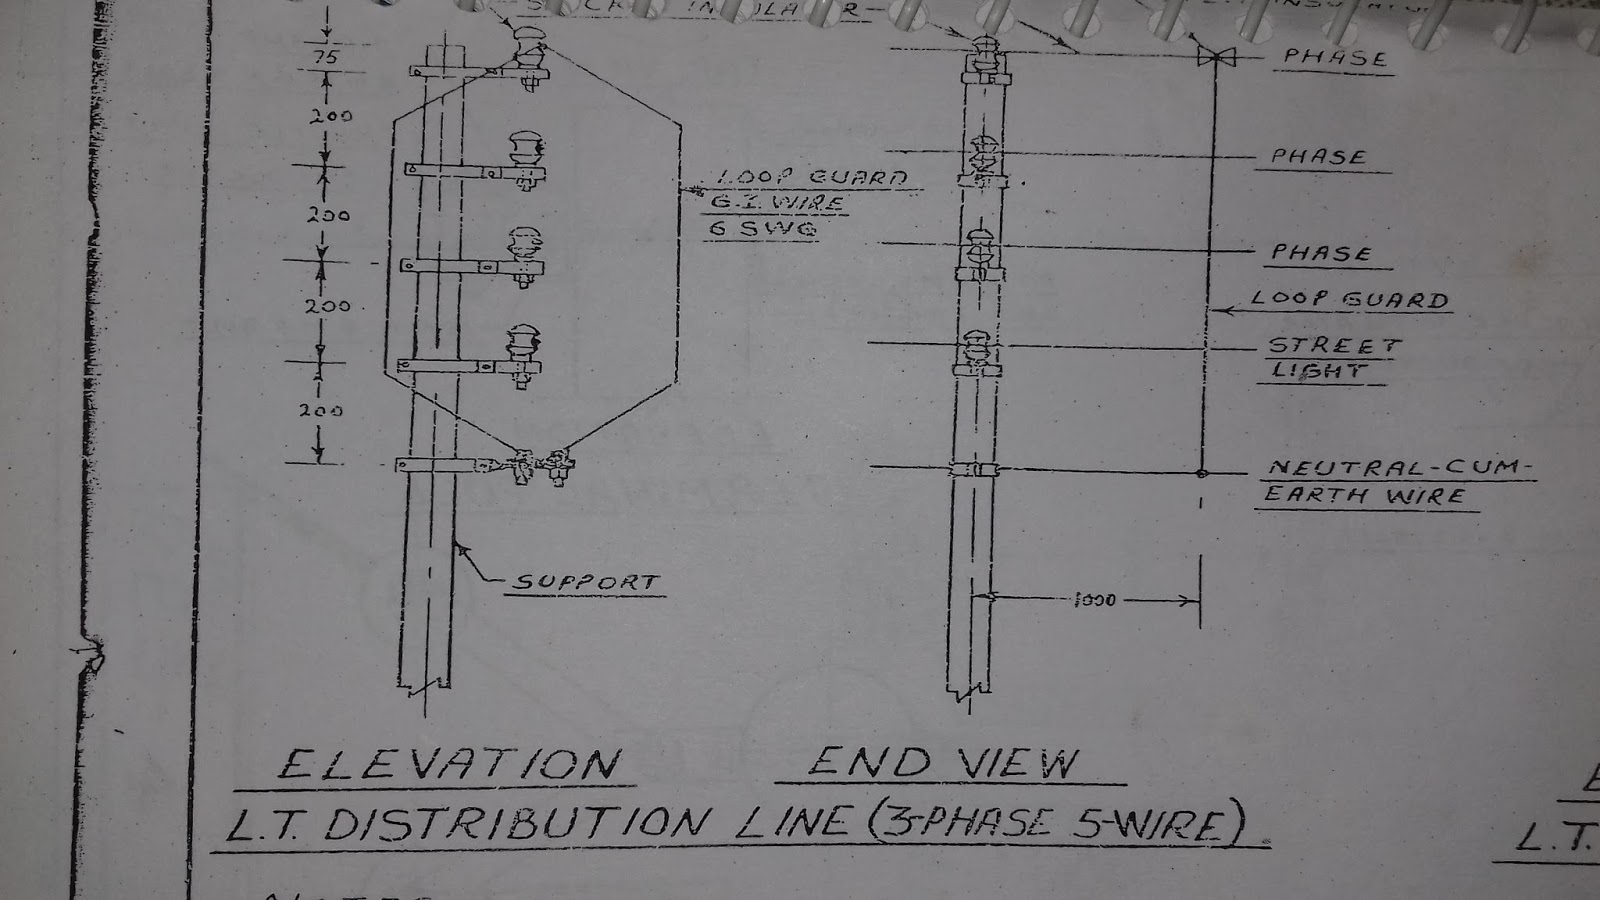 Electrical Distribution What Is Difference Between Ht Line And Loop Wiring System L T Possess 4 Wire 3 For Phase Th One Neutral H Dont Has It Only